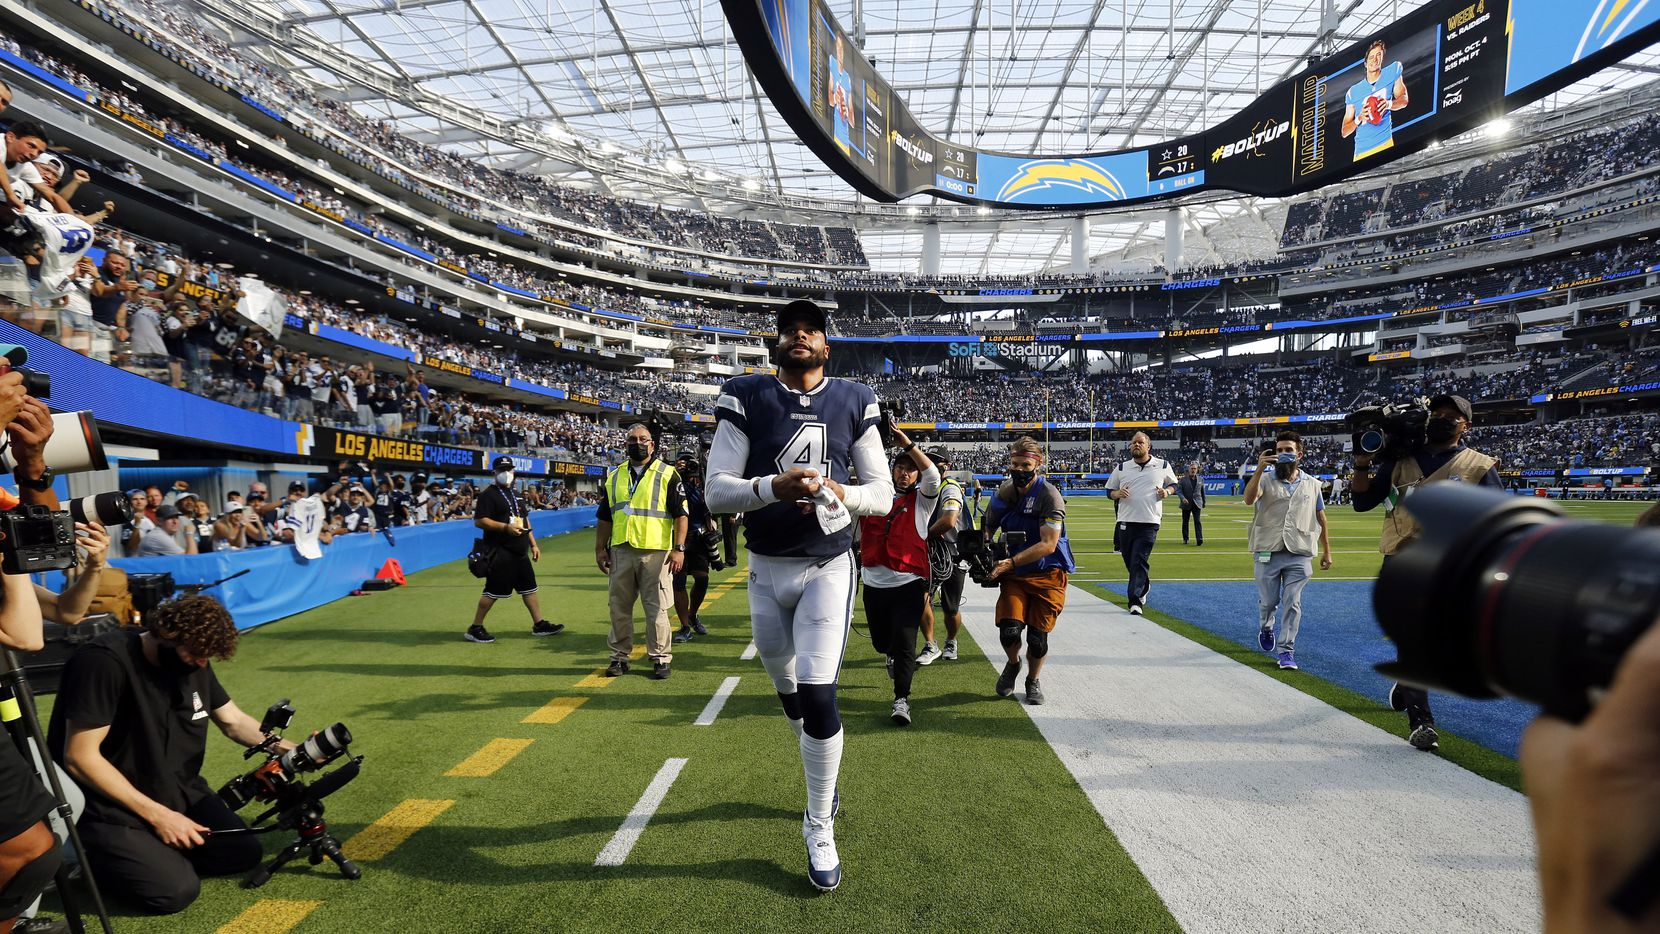 Dallas Cowboys quarterback Dak Prescott (4) runs off the field after their win over the Los Angeles Chargers, 20-17, at SoFi Stadium in Inglewood, California, Sunday, September 19, 2021. The Cowboys won, 20-17.